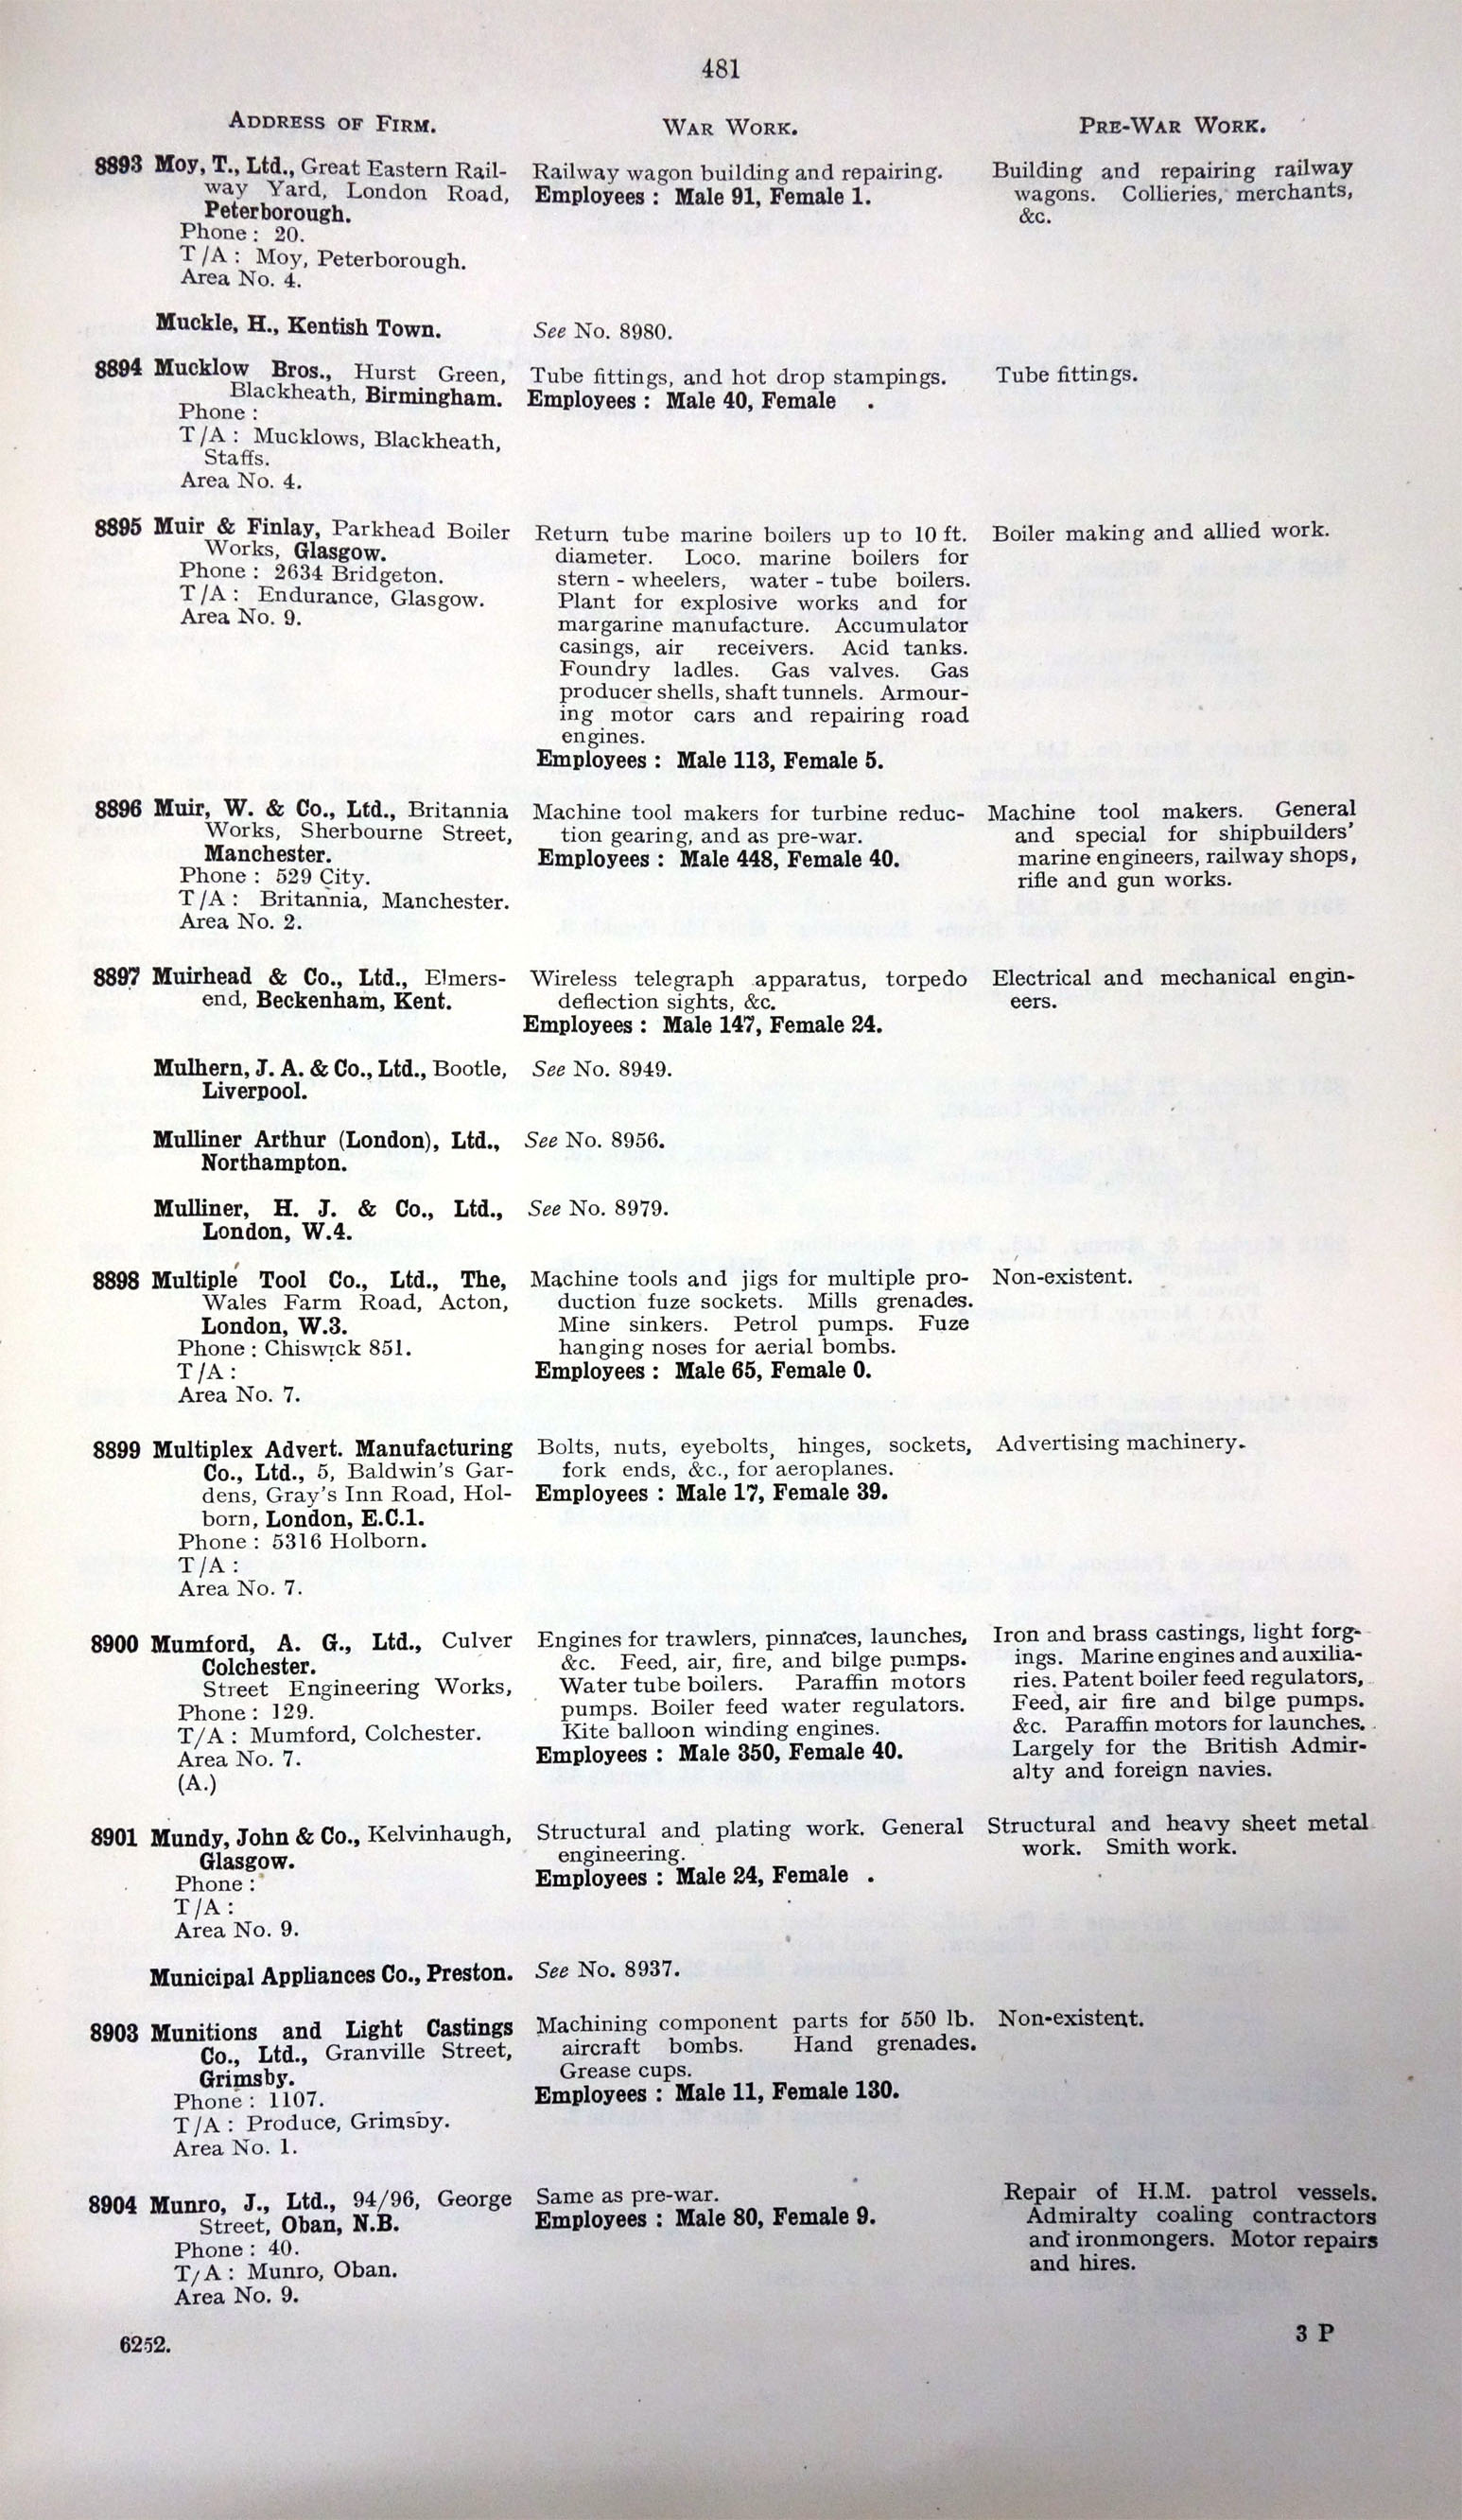 1918 Directory of Manufacturers in Engineering and Allied Trades